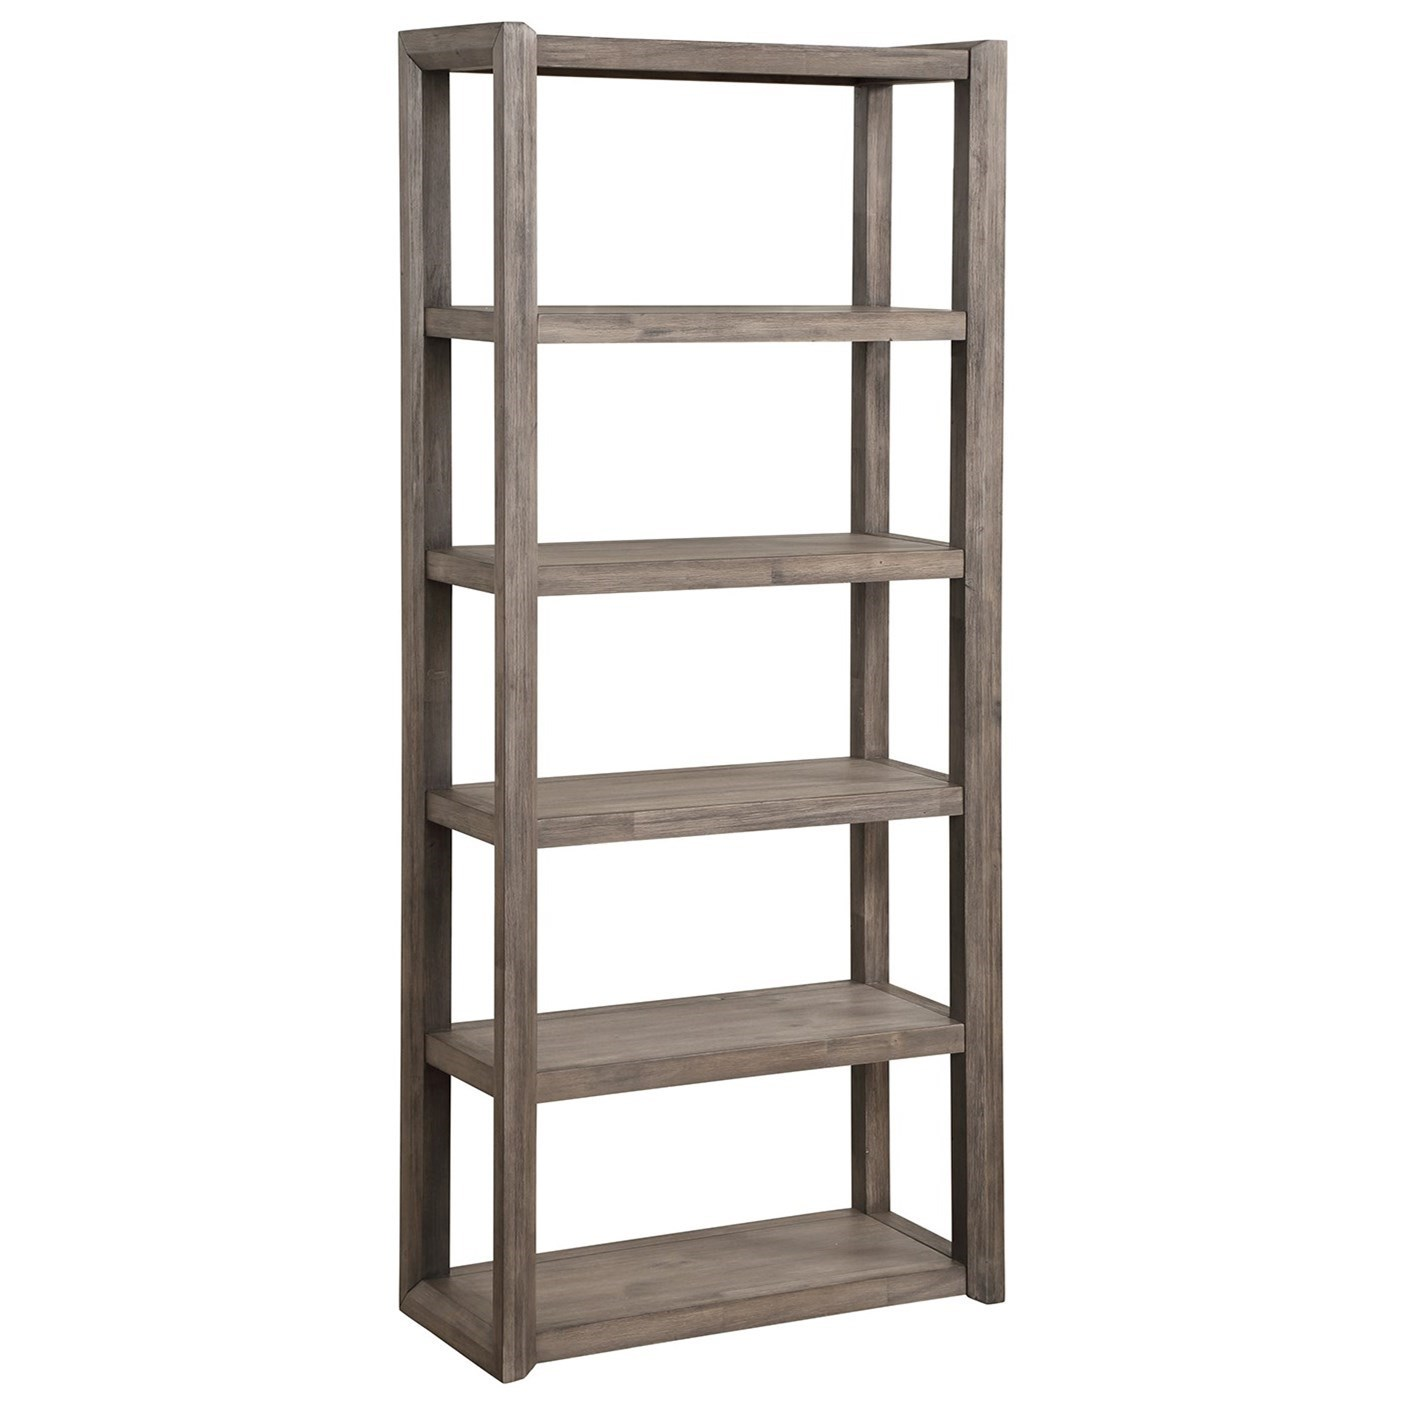 Avana Bookcase by Legends Furniture at EFO Furniture Outlet